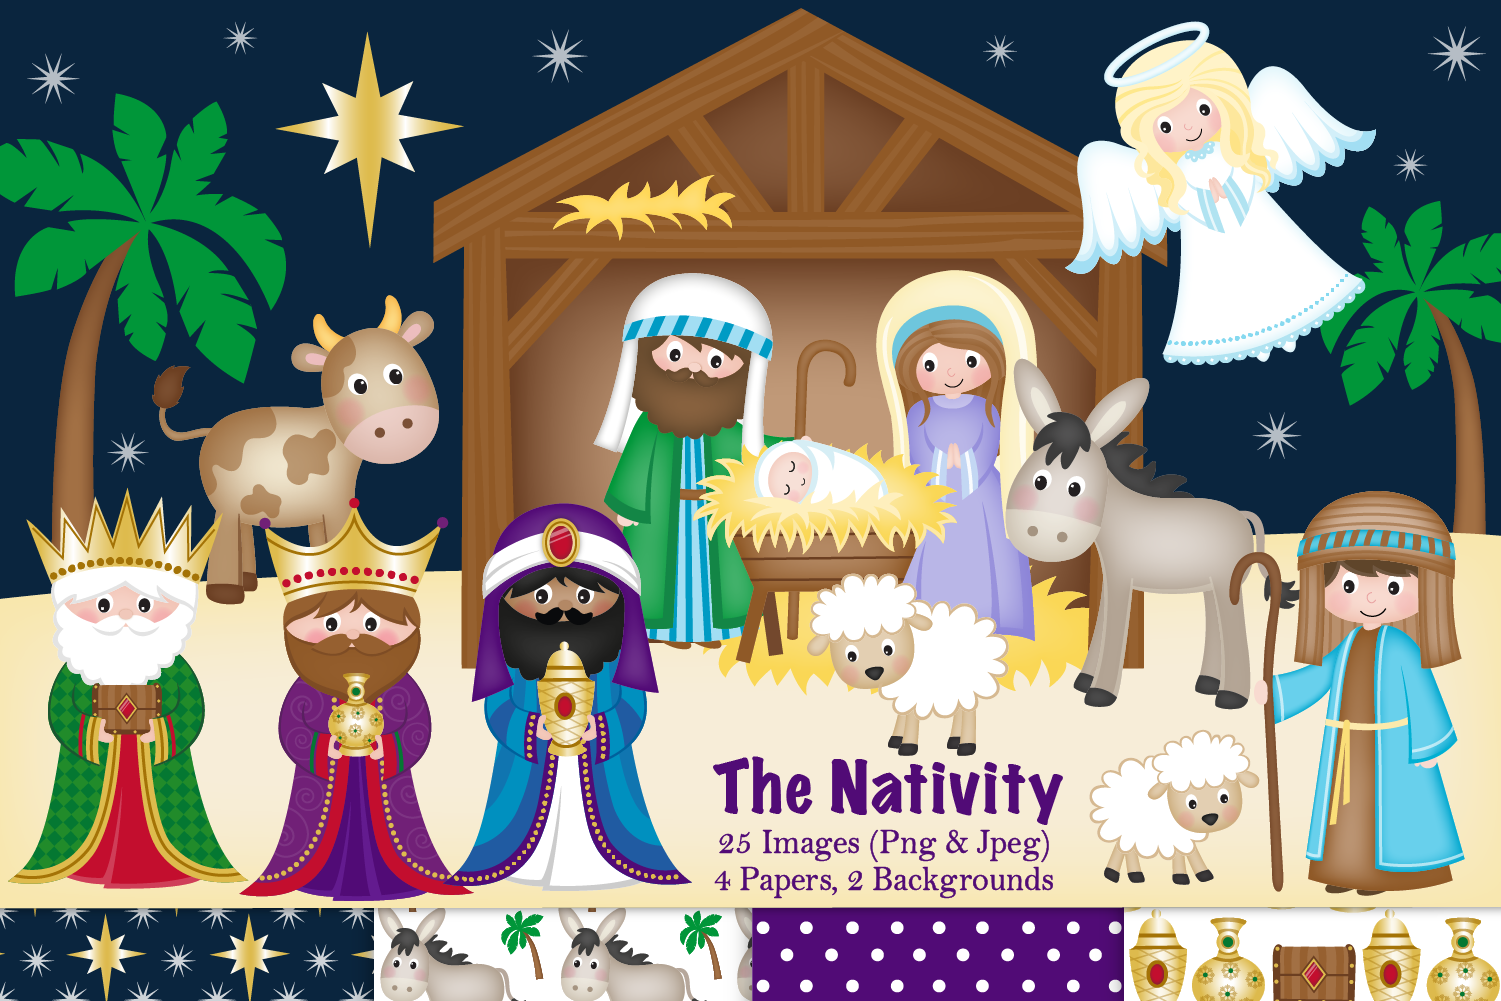 Nativity clipart, Christmas Nativity, Nativity Scene example image 1